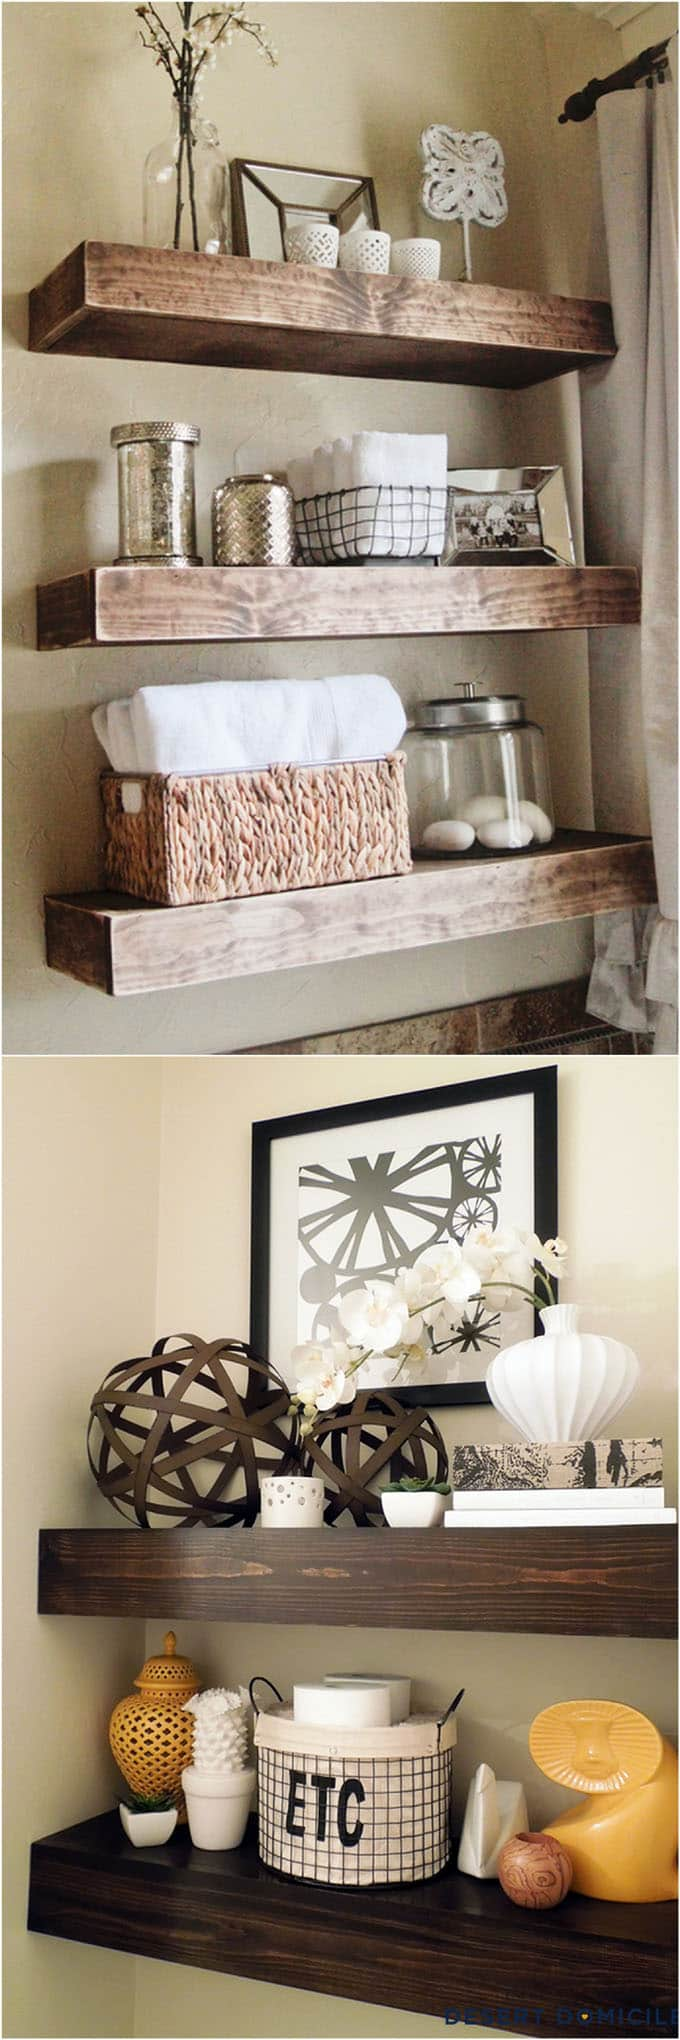 easy and stylish diy floating shelves wall piece apieceofrainbow building tutorials beautiful for your home check french kitchen rack bathroom hooks ture ledge bookshelf shelf